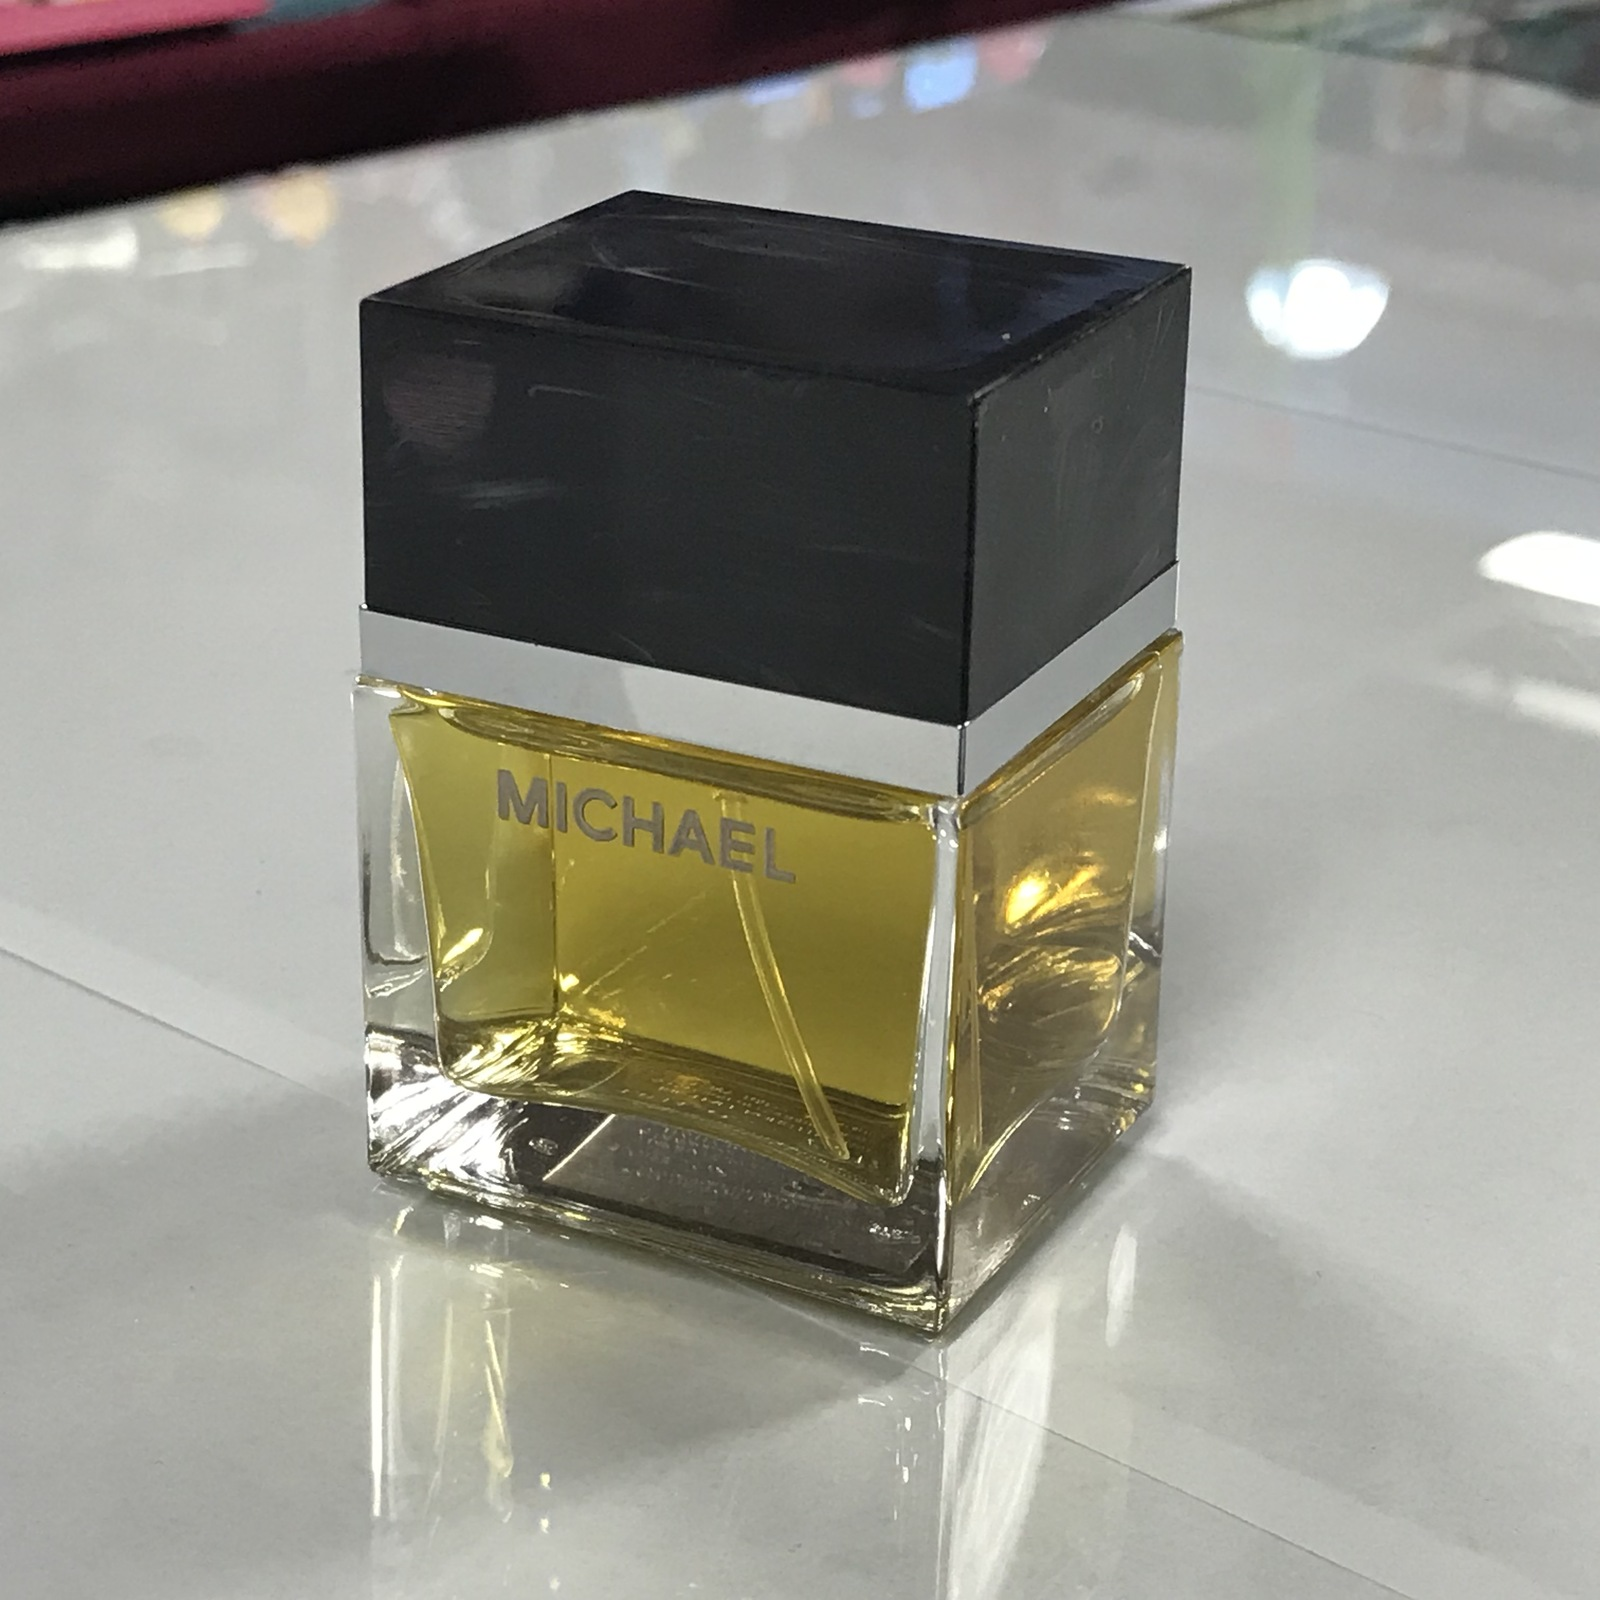 Michael by Michael Kors Men, Vintage Fragrance, 1.0 fl.oz / 30 ml EDT Spray